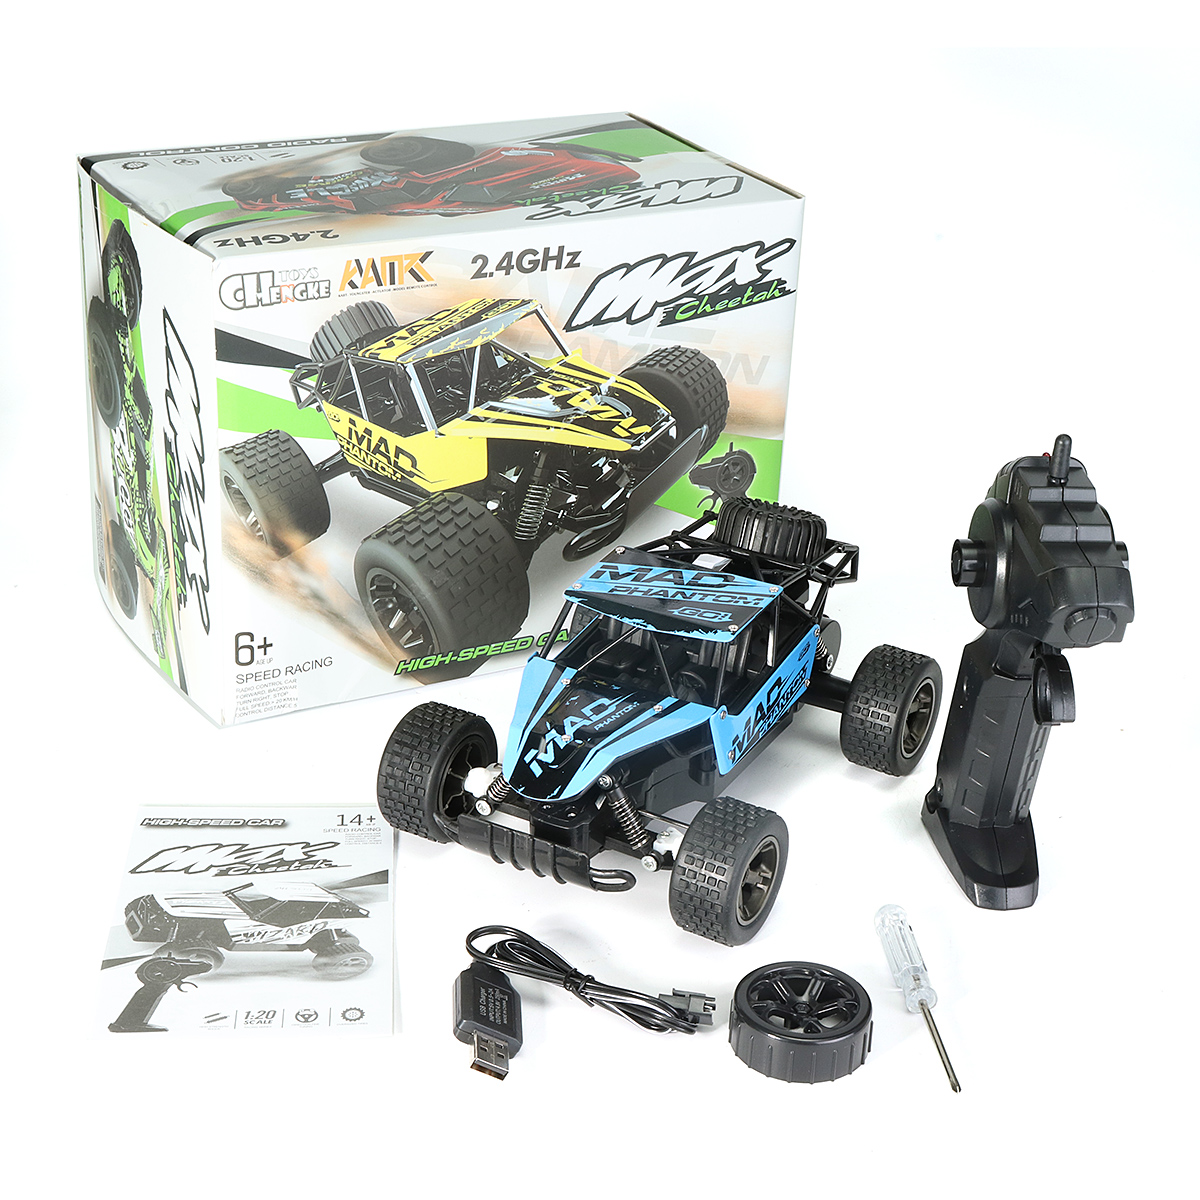 1:20 2.4GHz 4WD High Speed Radio Fast Remote RC toys & Hobbie Control RC Car Off-Road Truck RTR Toy For Children Gift